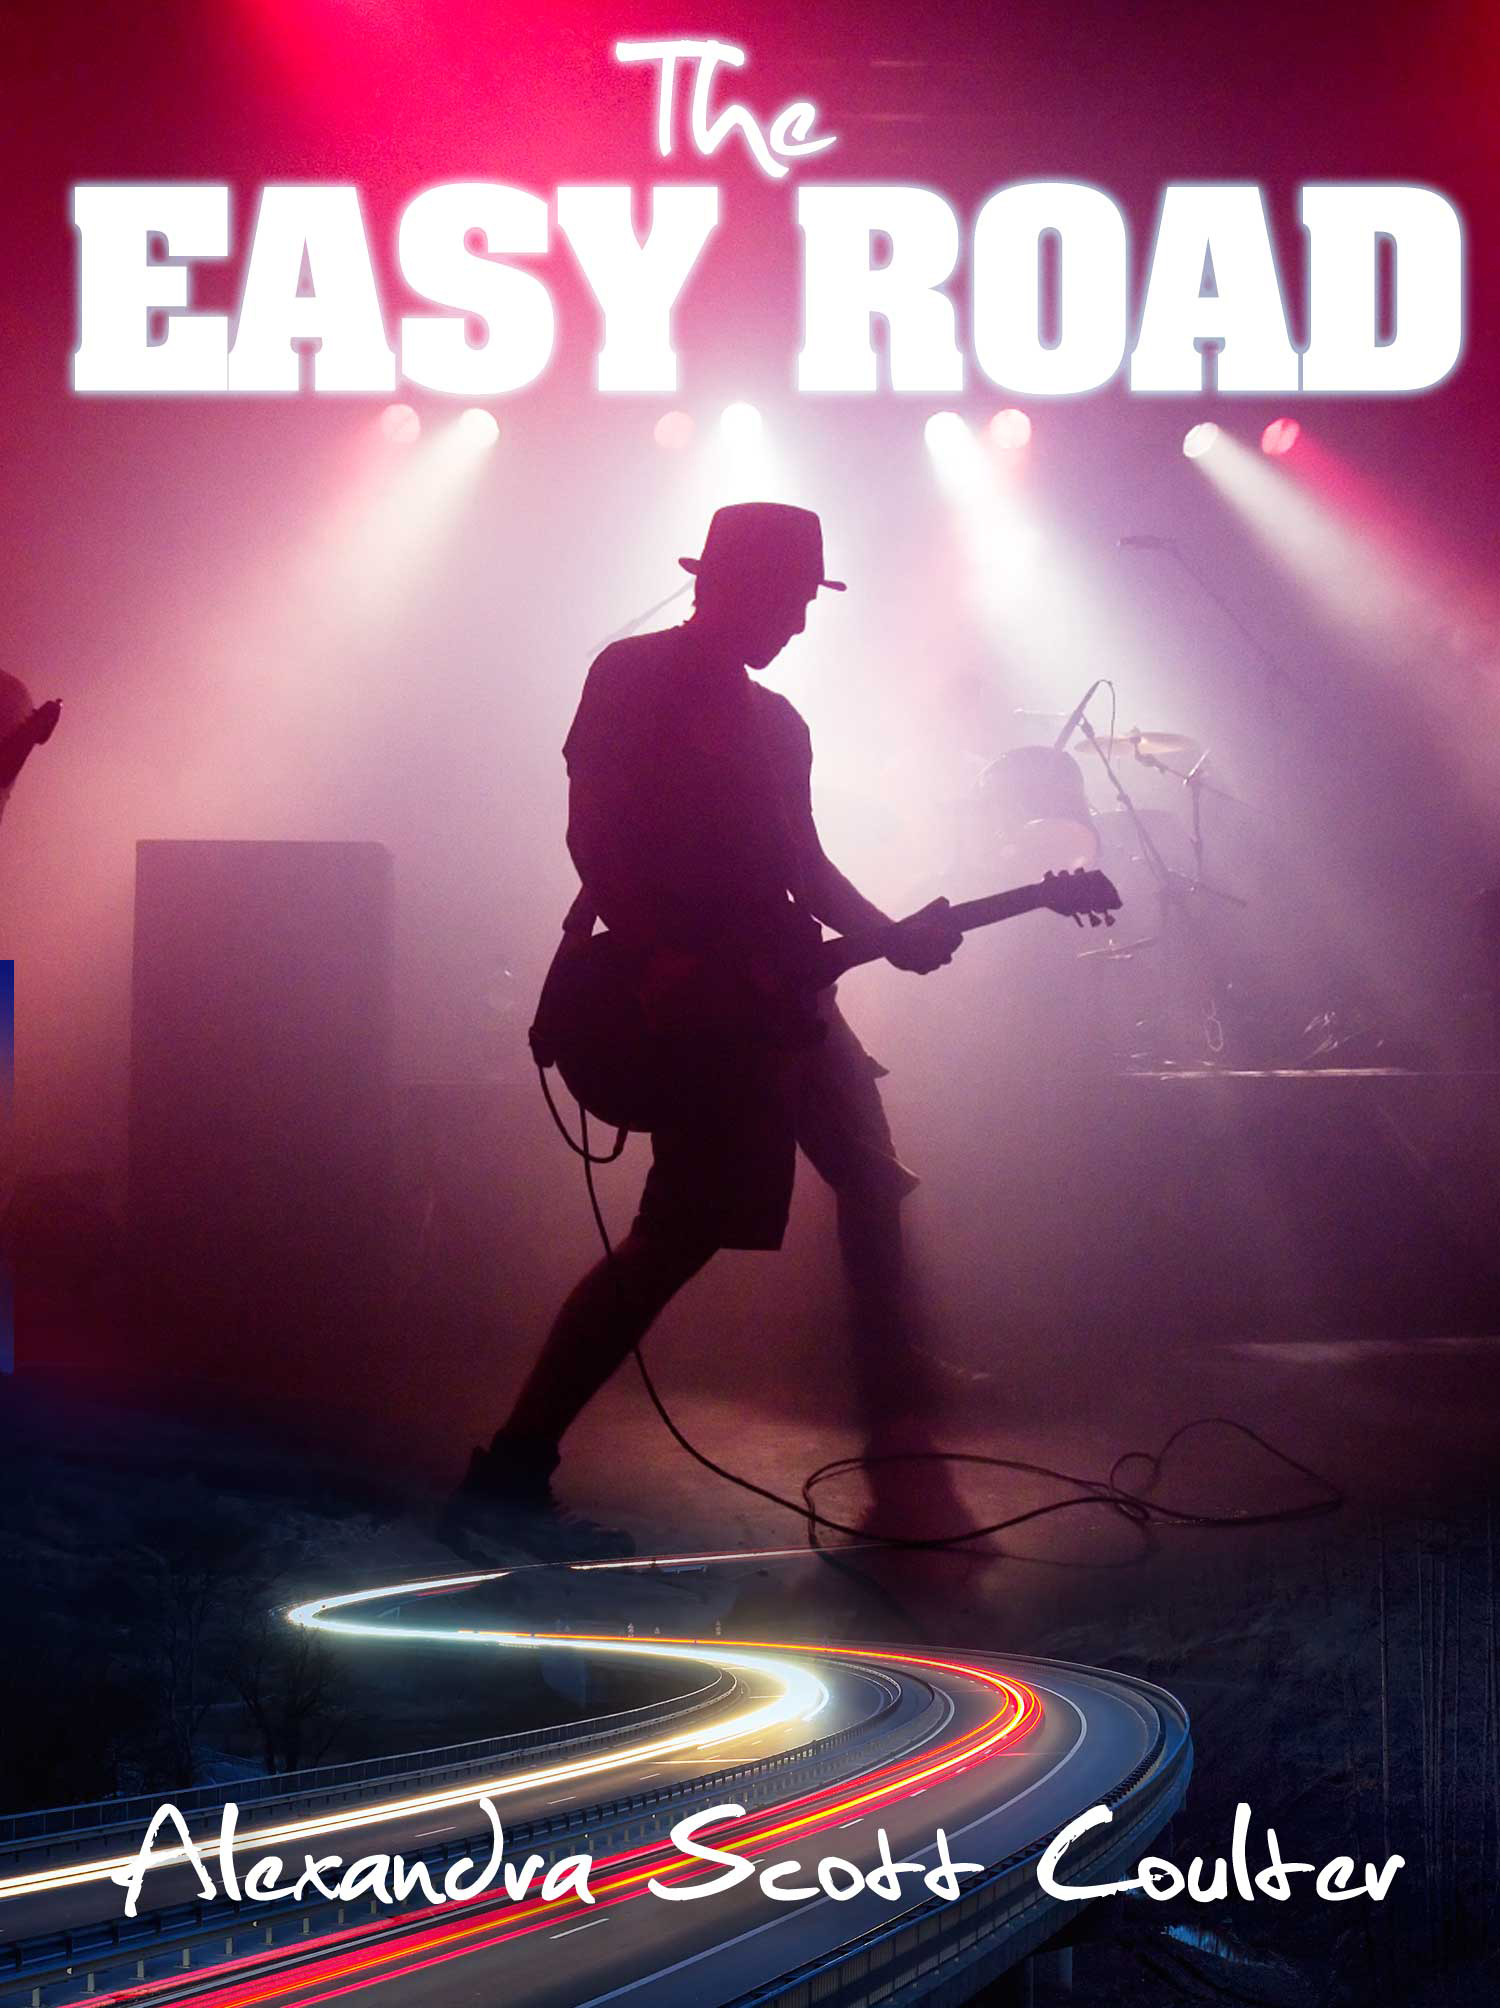 The Easy Road by Alexandra Coulter